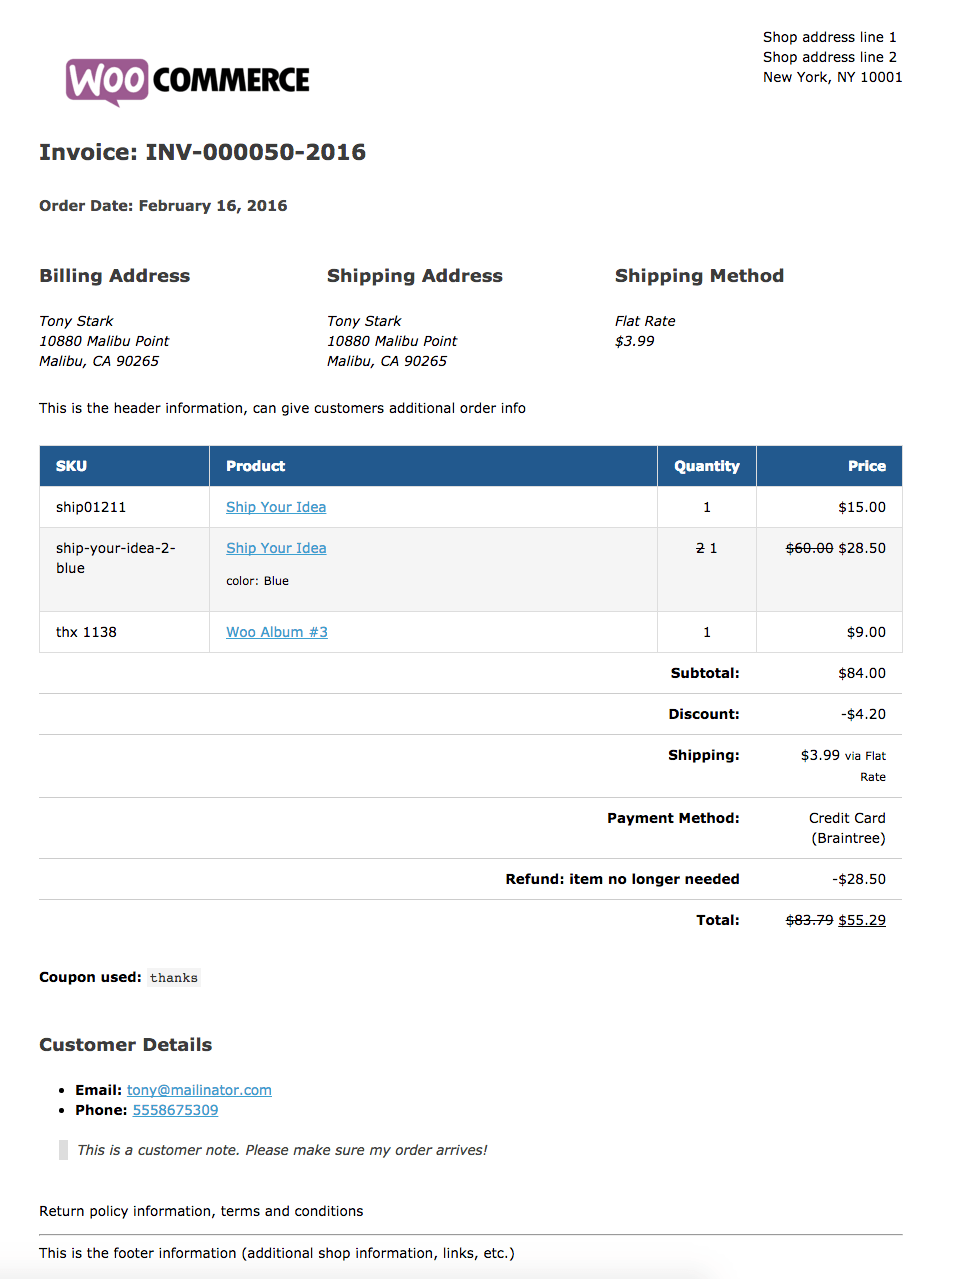 Aaaaeroincus  Pleasing Print Invoices Amp Packing Lists  Woocommerce With Foxy View A Sample Invoice  With Easy On The Eye Invoice Php Script Also Accounting Invoice Software In Addition Opencart Invoice And Best App For Invoicing As Well As Parking Invoice Toronto Additionally Invoice Request Letter From Woocommercecom With Aaaaeroincus  Foxy Print Invoices Amp Packing Lists  Woocommerce With Easy On The Eye View A Sample Invoice  And Pleasing Invoice Php Script Also Accounting Invoice Software In Addition Opencart Invoice From Woocommercecom